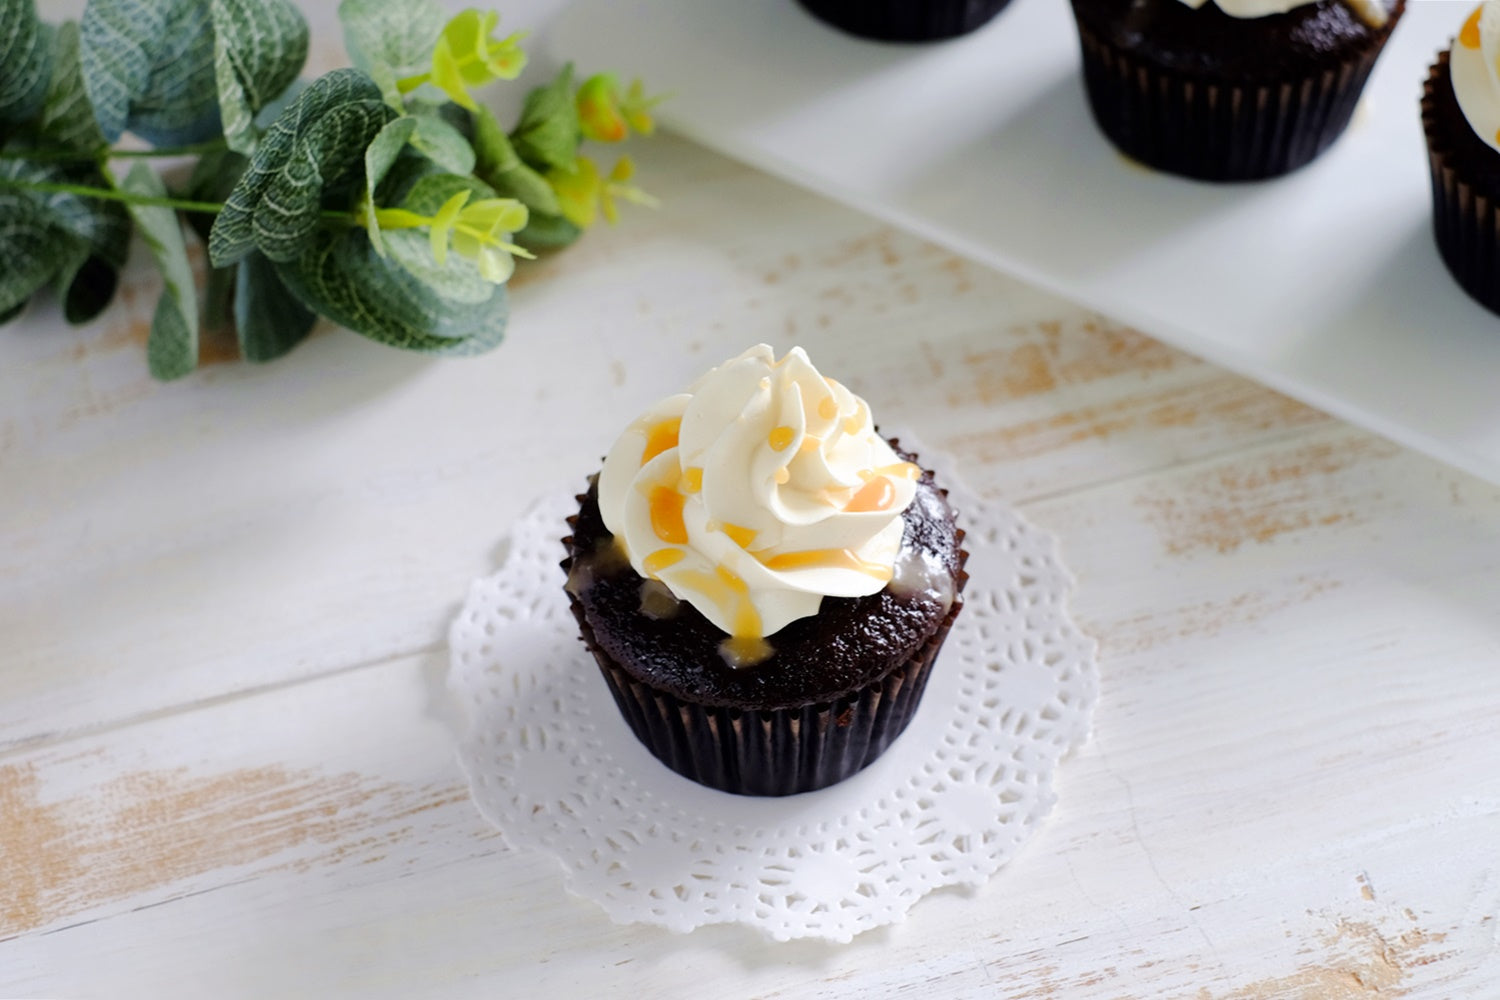 Chocolate Caramel Cupcakes (From $3/Pc)